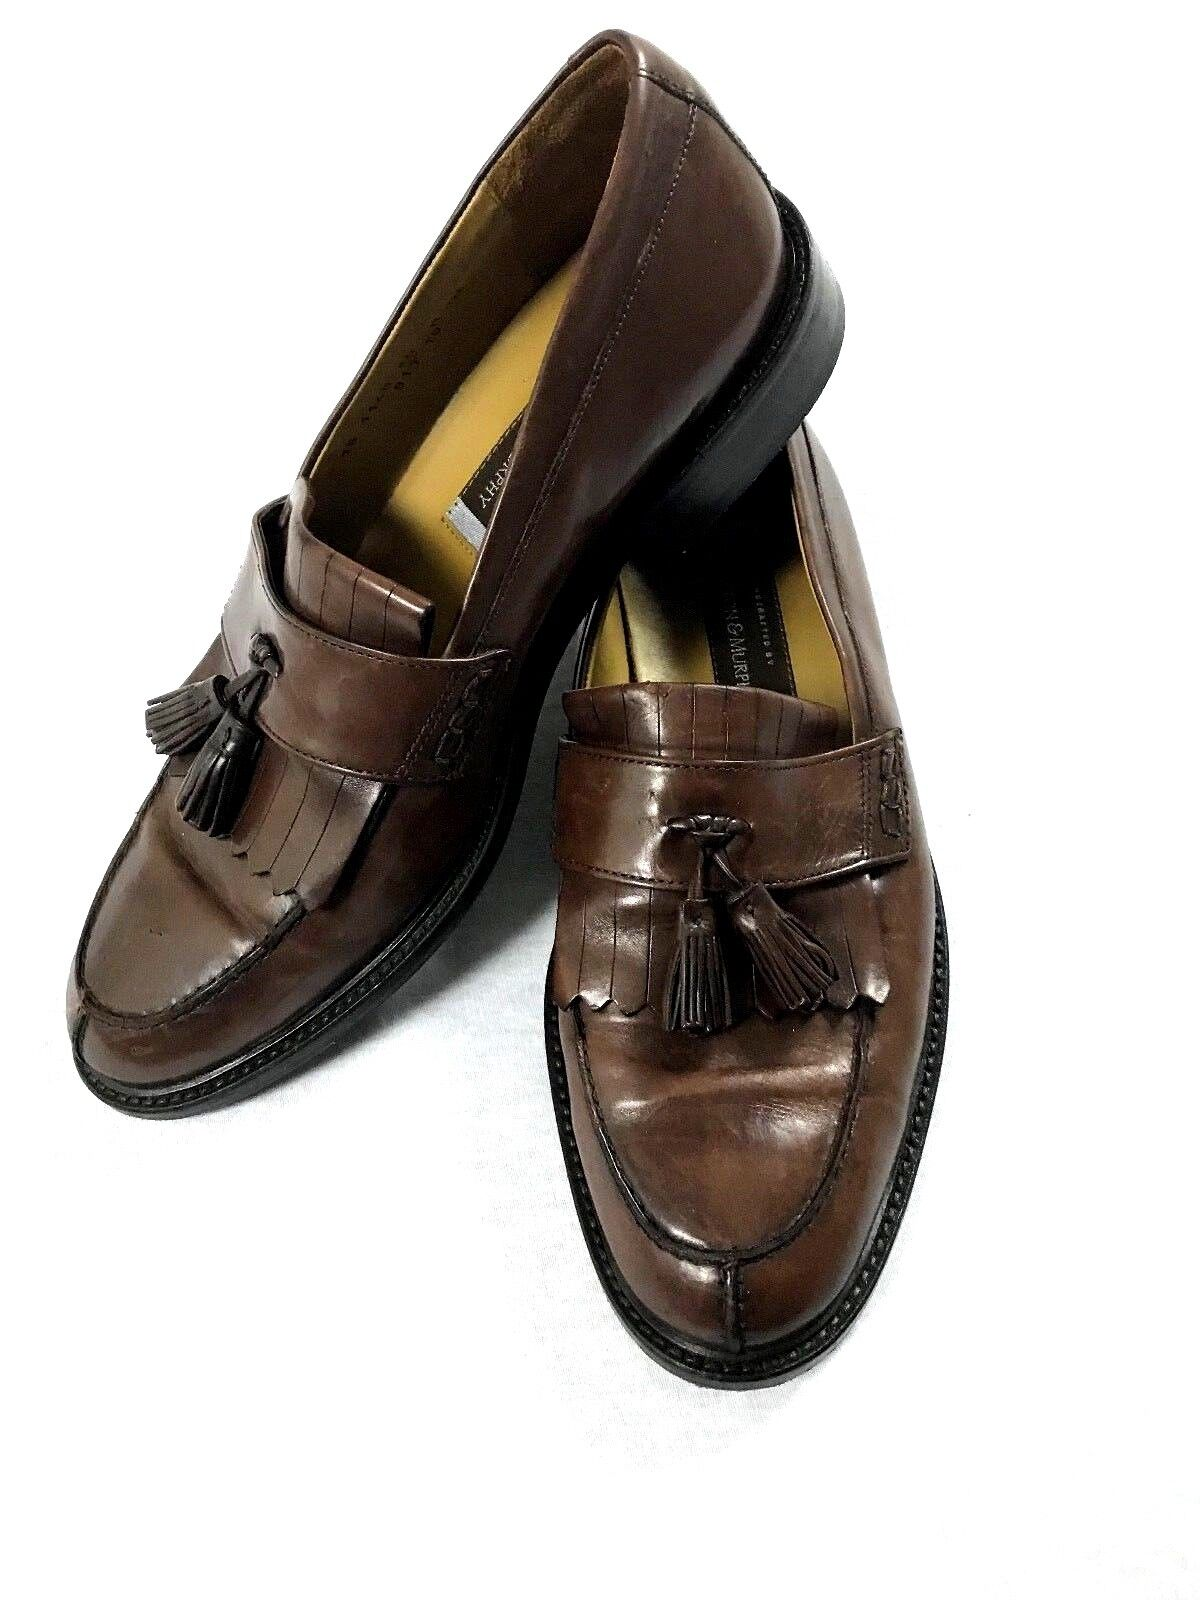 Johnson & Murphy Mens Brown Leather Tassle Loafers shoes Size 10 M